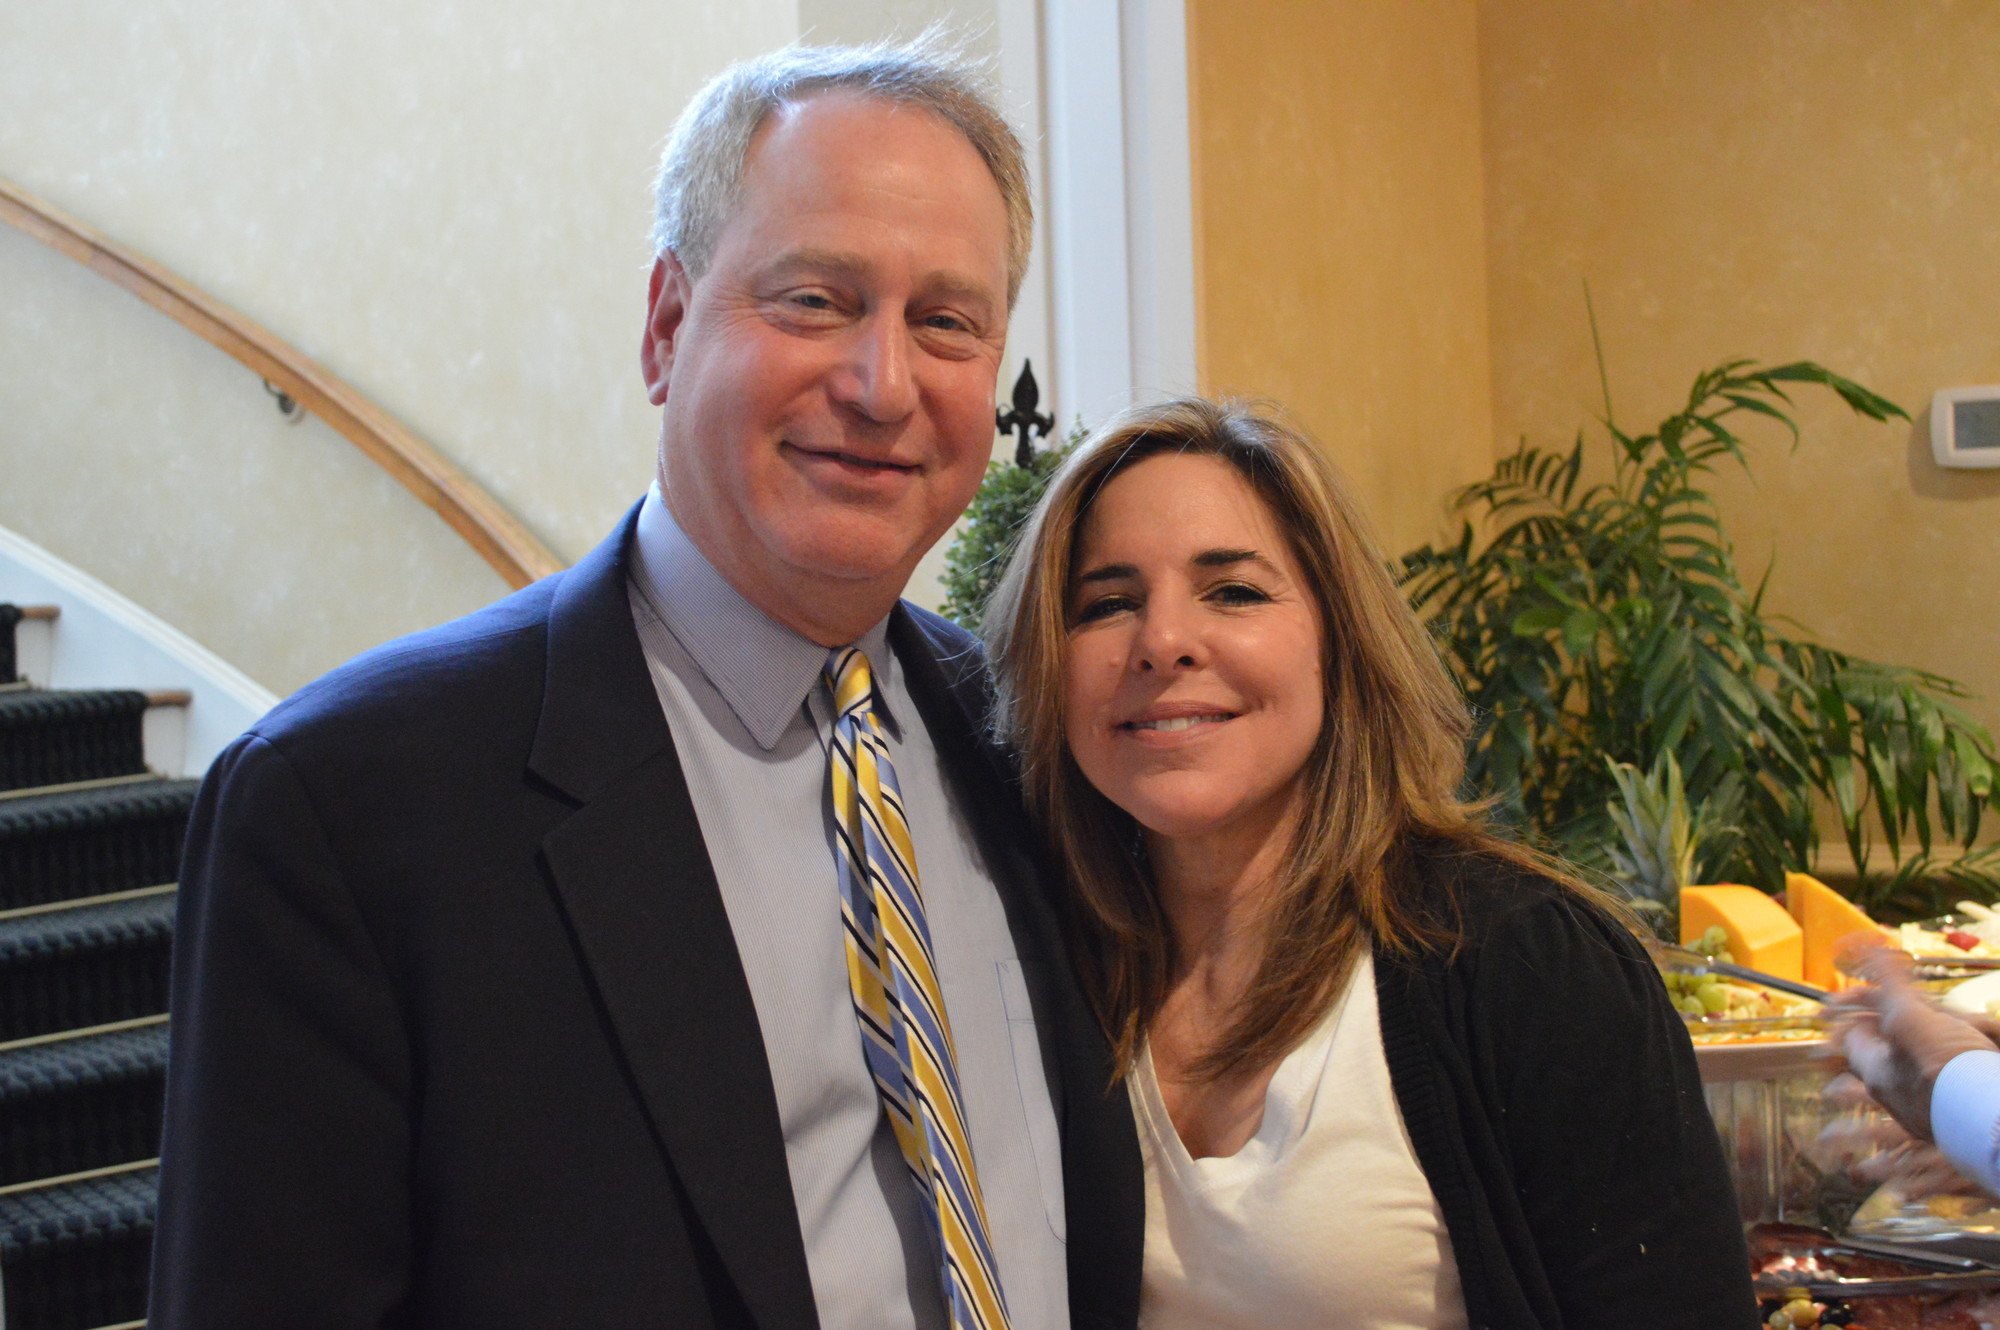 The fundraiser drew 290 people to The Woodmere Club, including Lawrence Woodmere Academy's Headmaster, Alan Bernstein and his wife, Melissa.